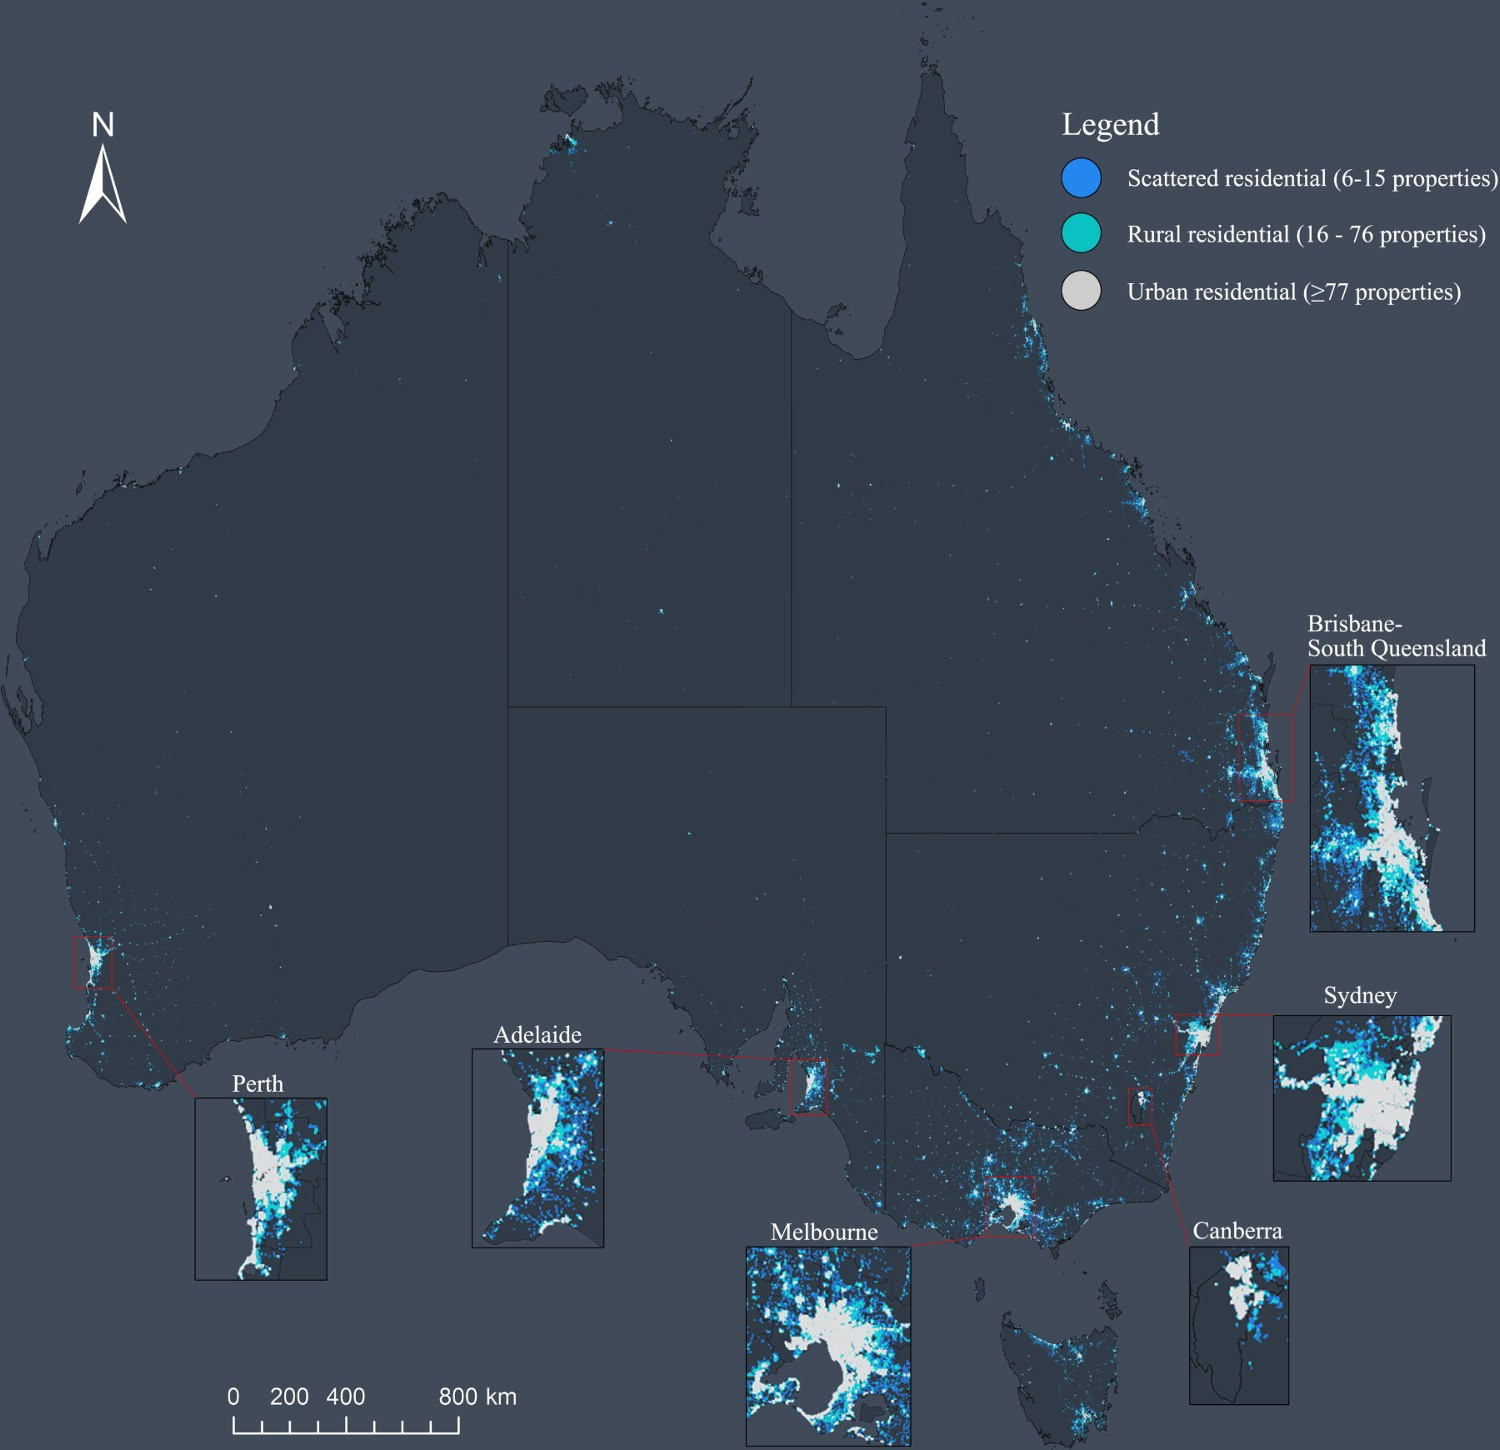 Figure 1: Where do Australians reside? Use of light at night as an indicator of population density and location.   (Source: Bin Xie & Yan Liu (2018) Visualizing Australia's urban extent: a comparison between residential housing addresses and night-time light data. See https://doi.org/10.1080/21681376.2018.152664)